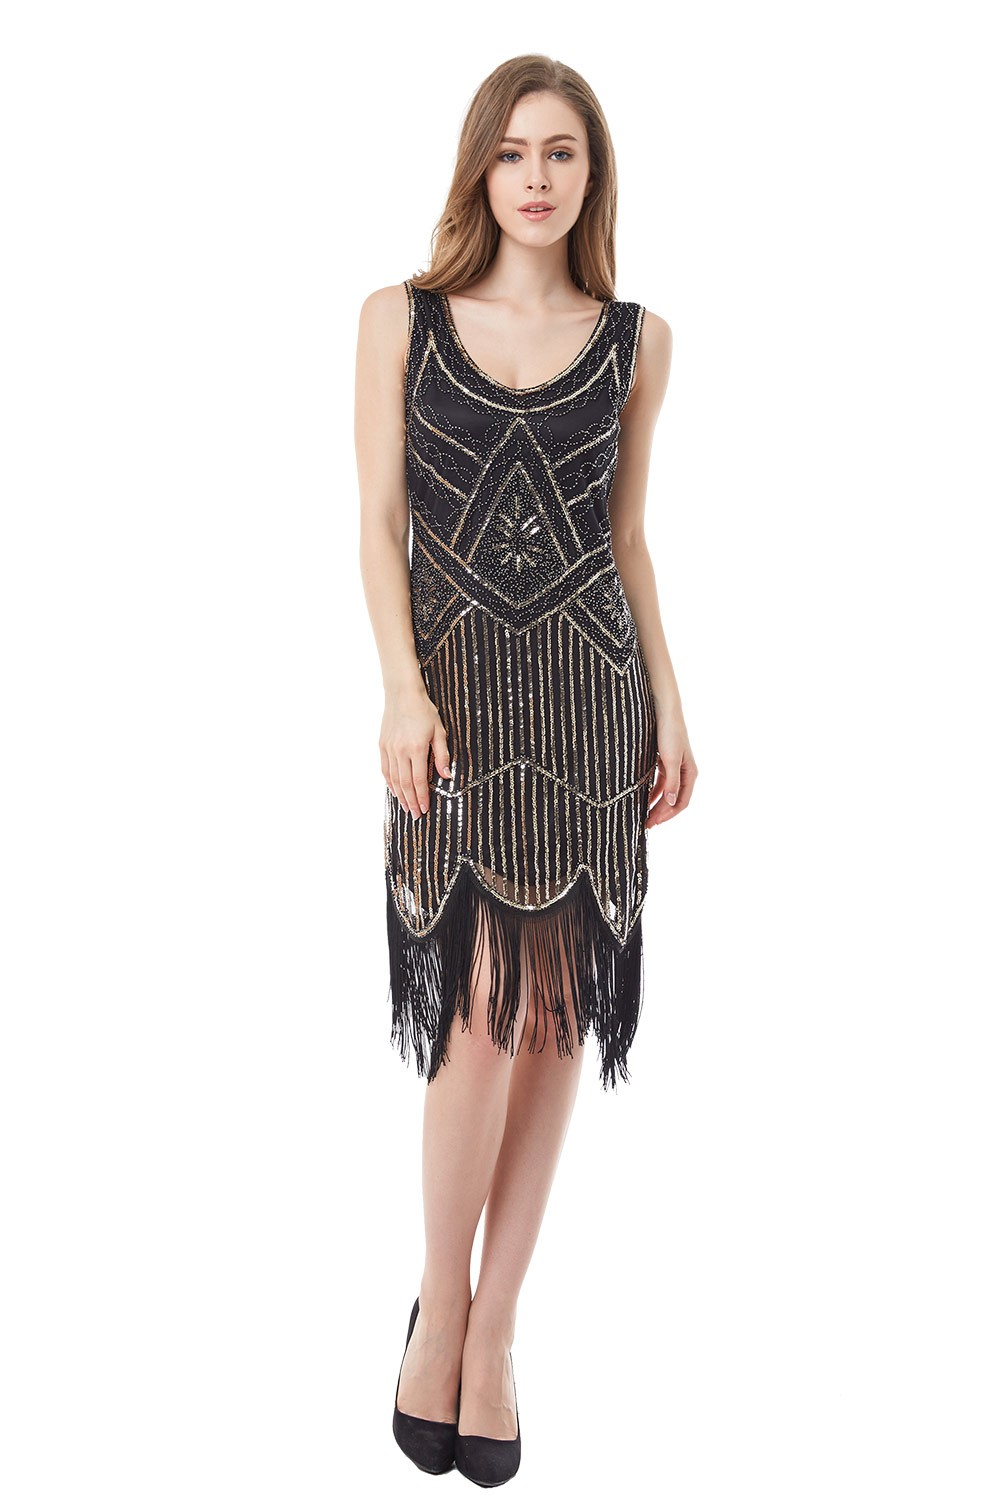 1920s vintage great gatsby charleston 20s flapper fancy